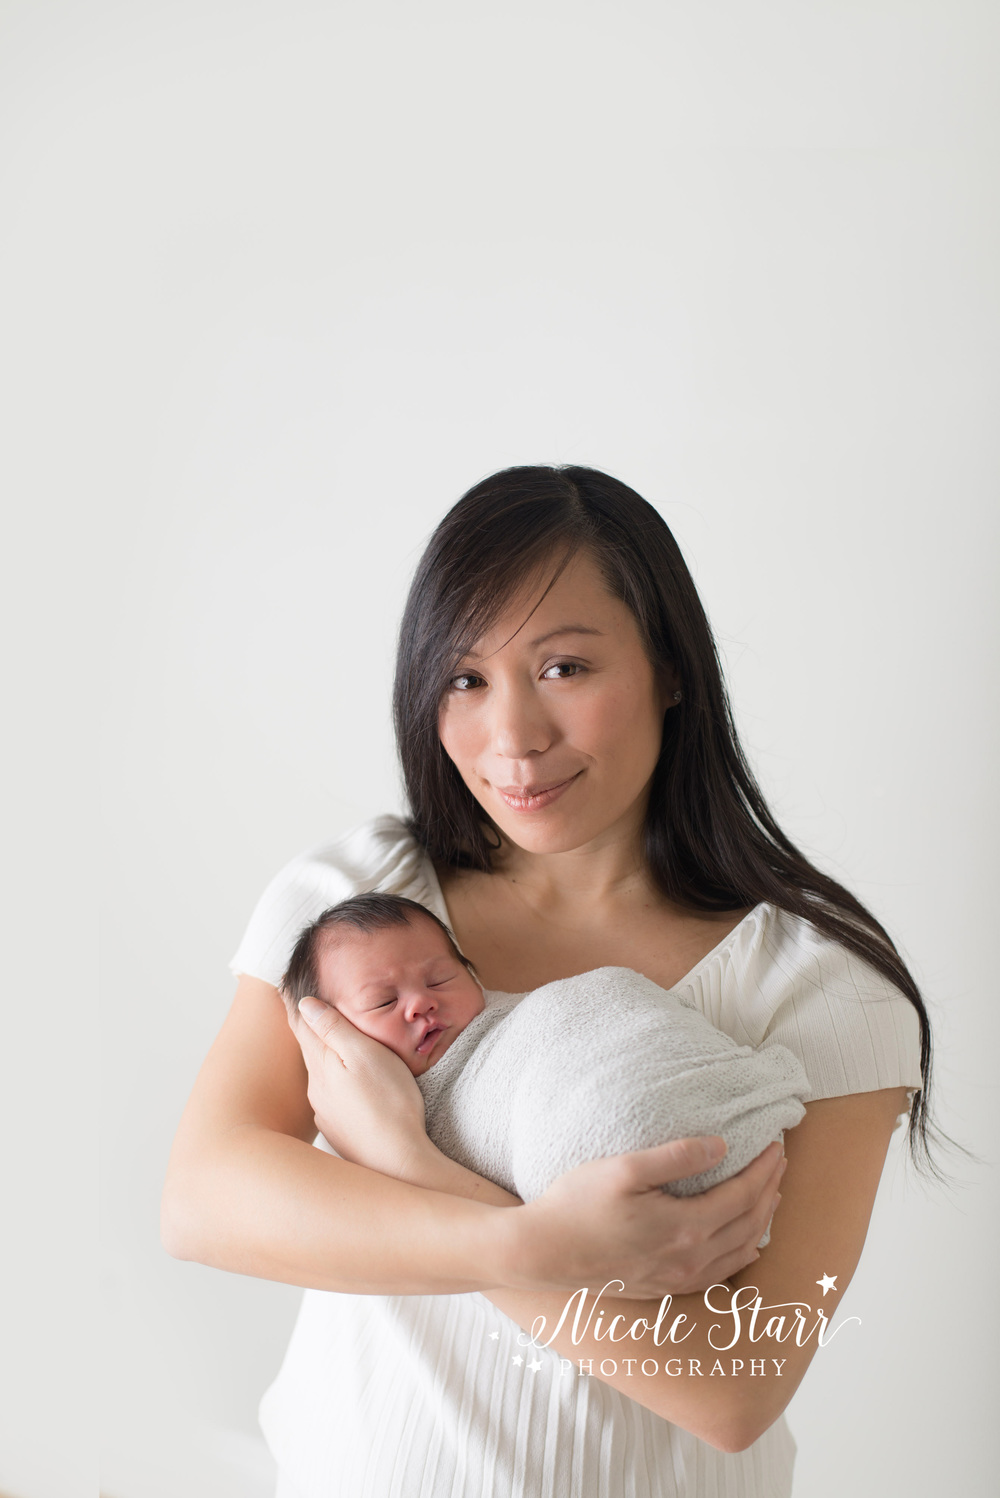 Beautiful mother and newborn baby photograph